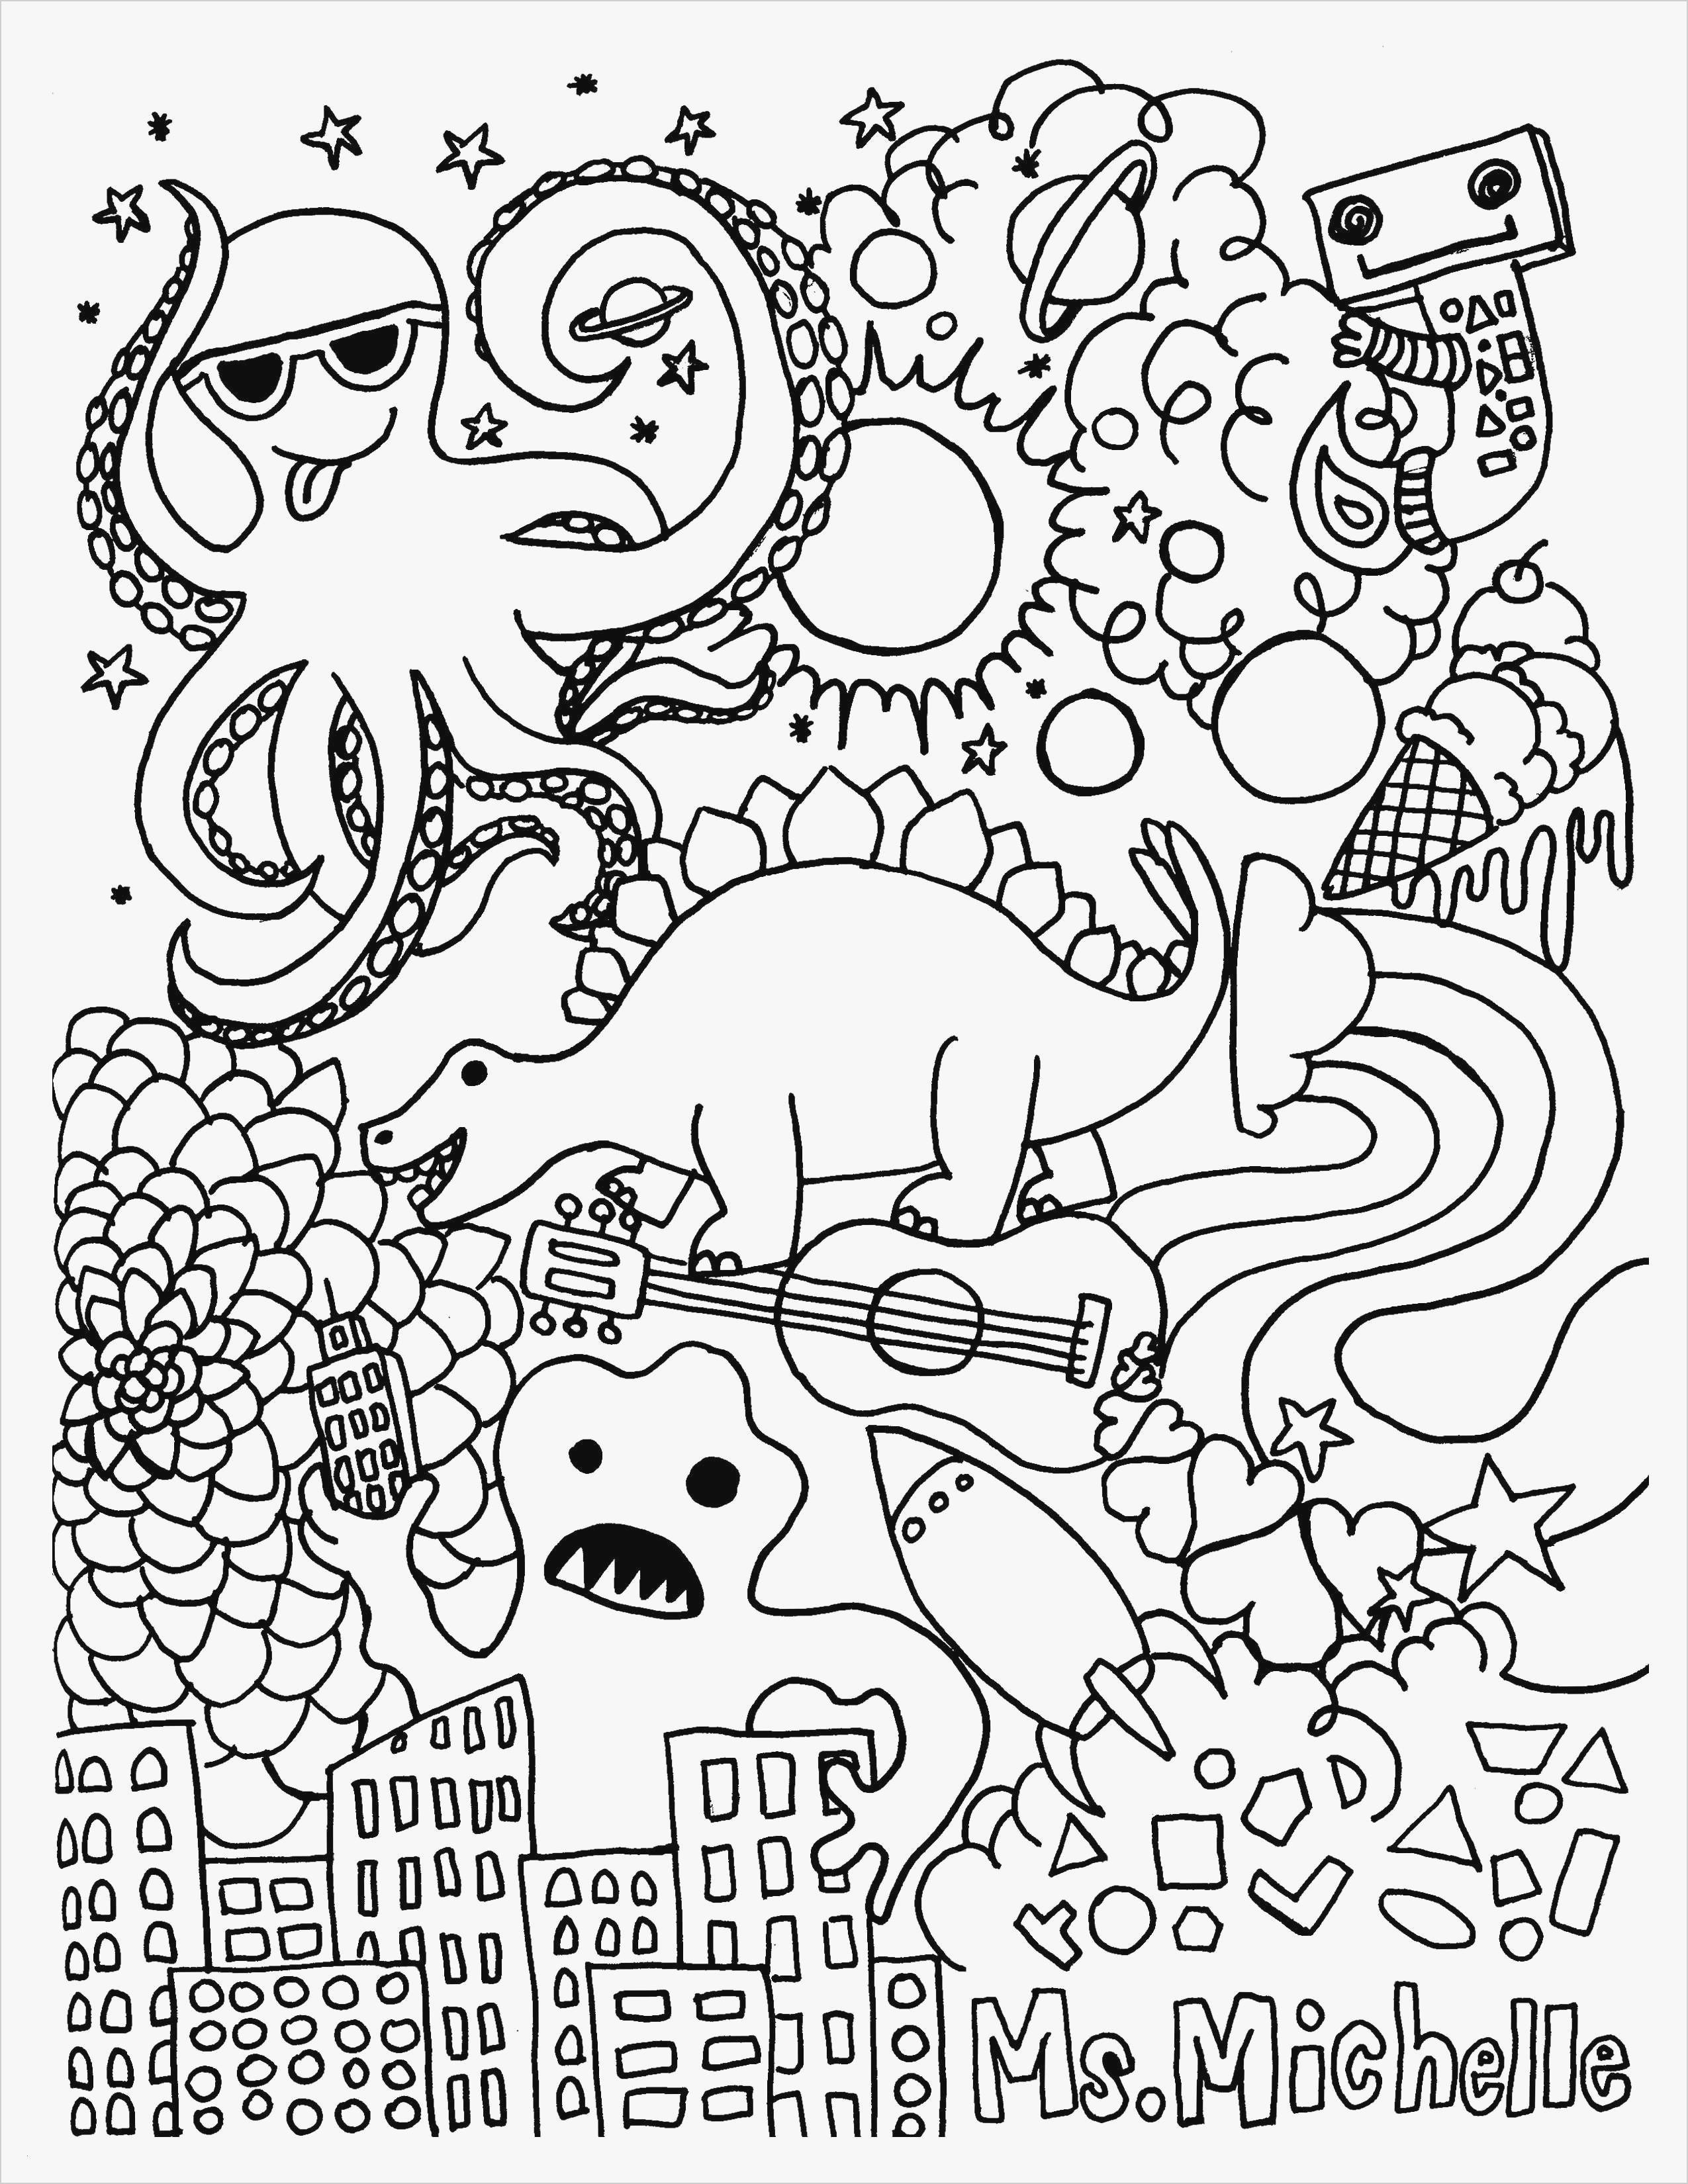 Barn Coloring Page - Findmedicare.pw - Free Printable Barn Coloring Pages